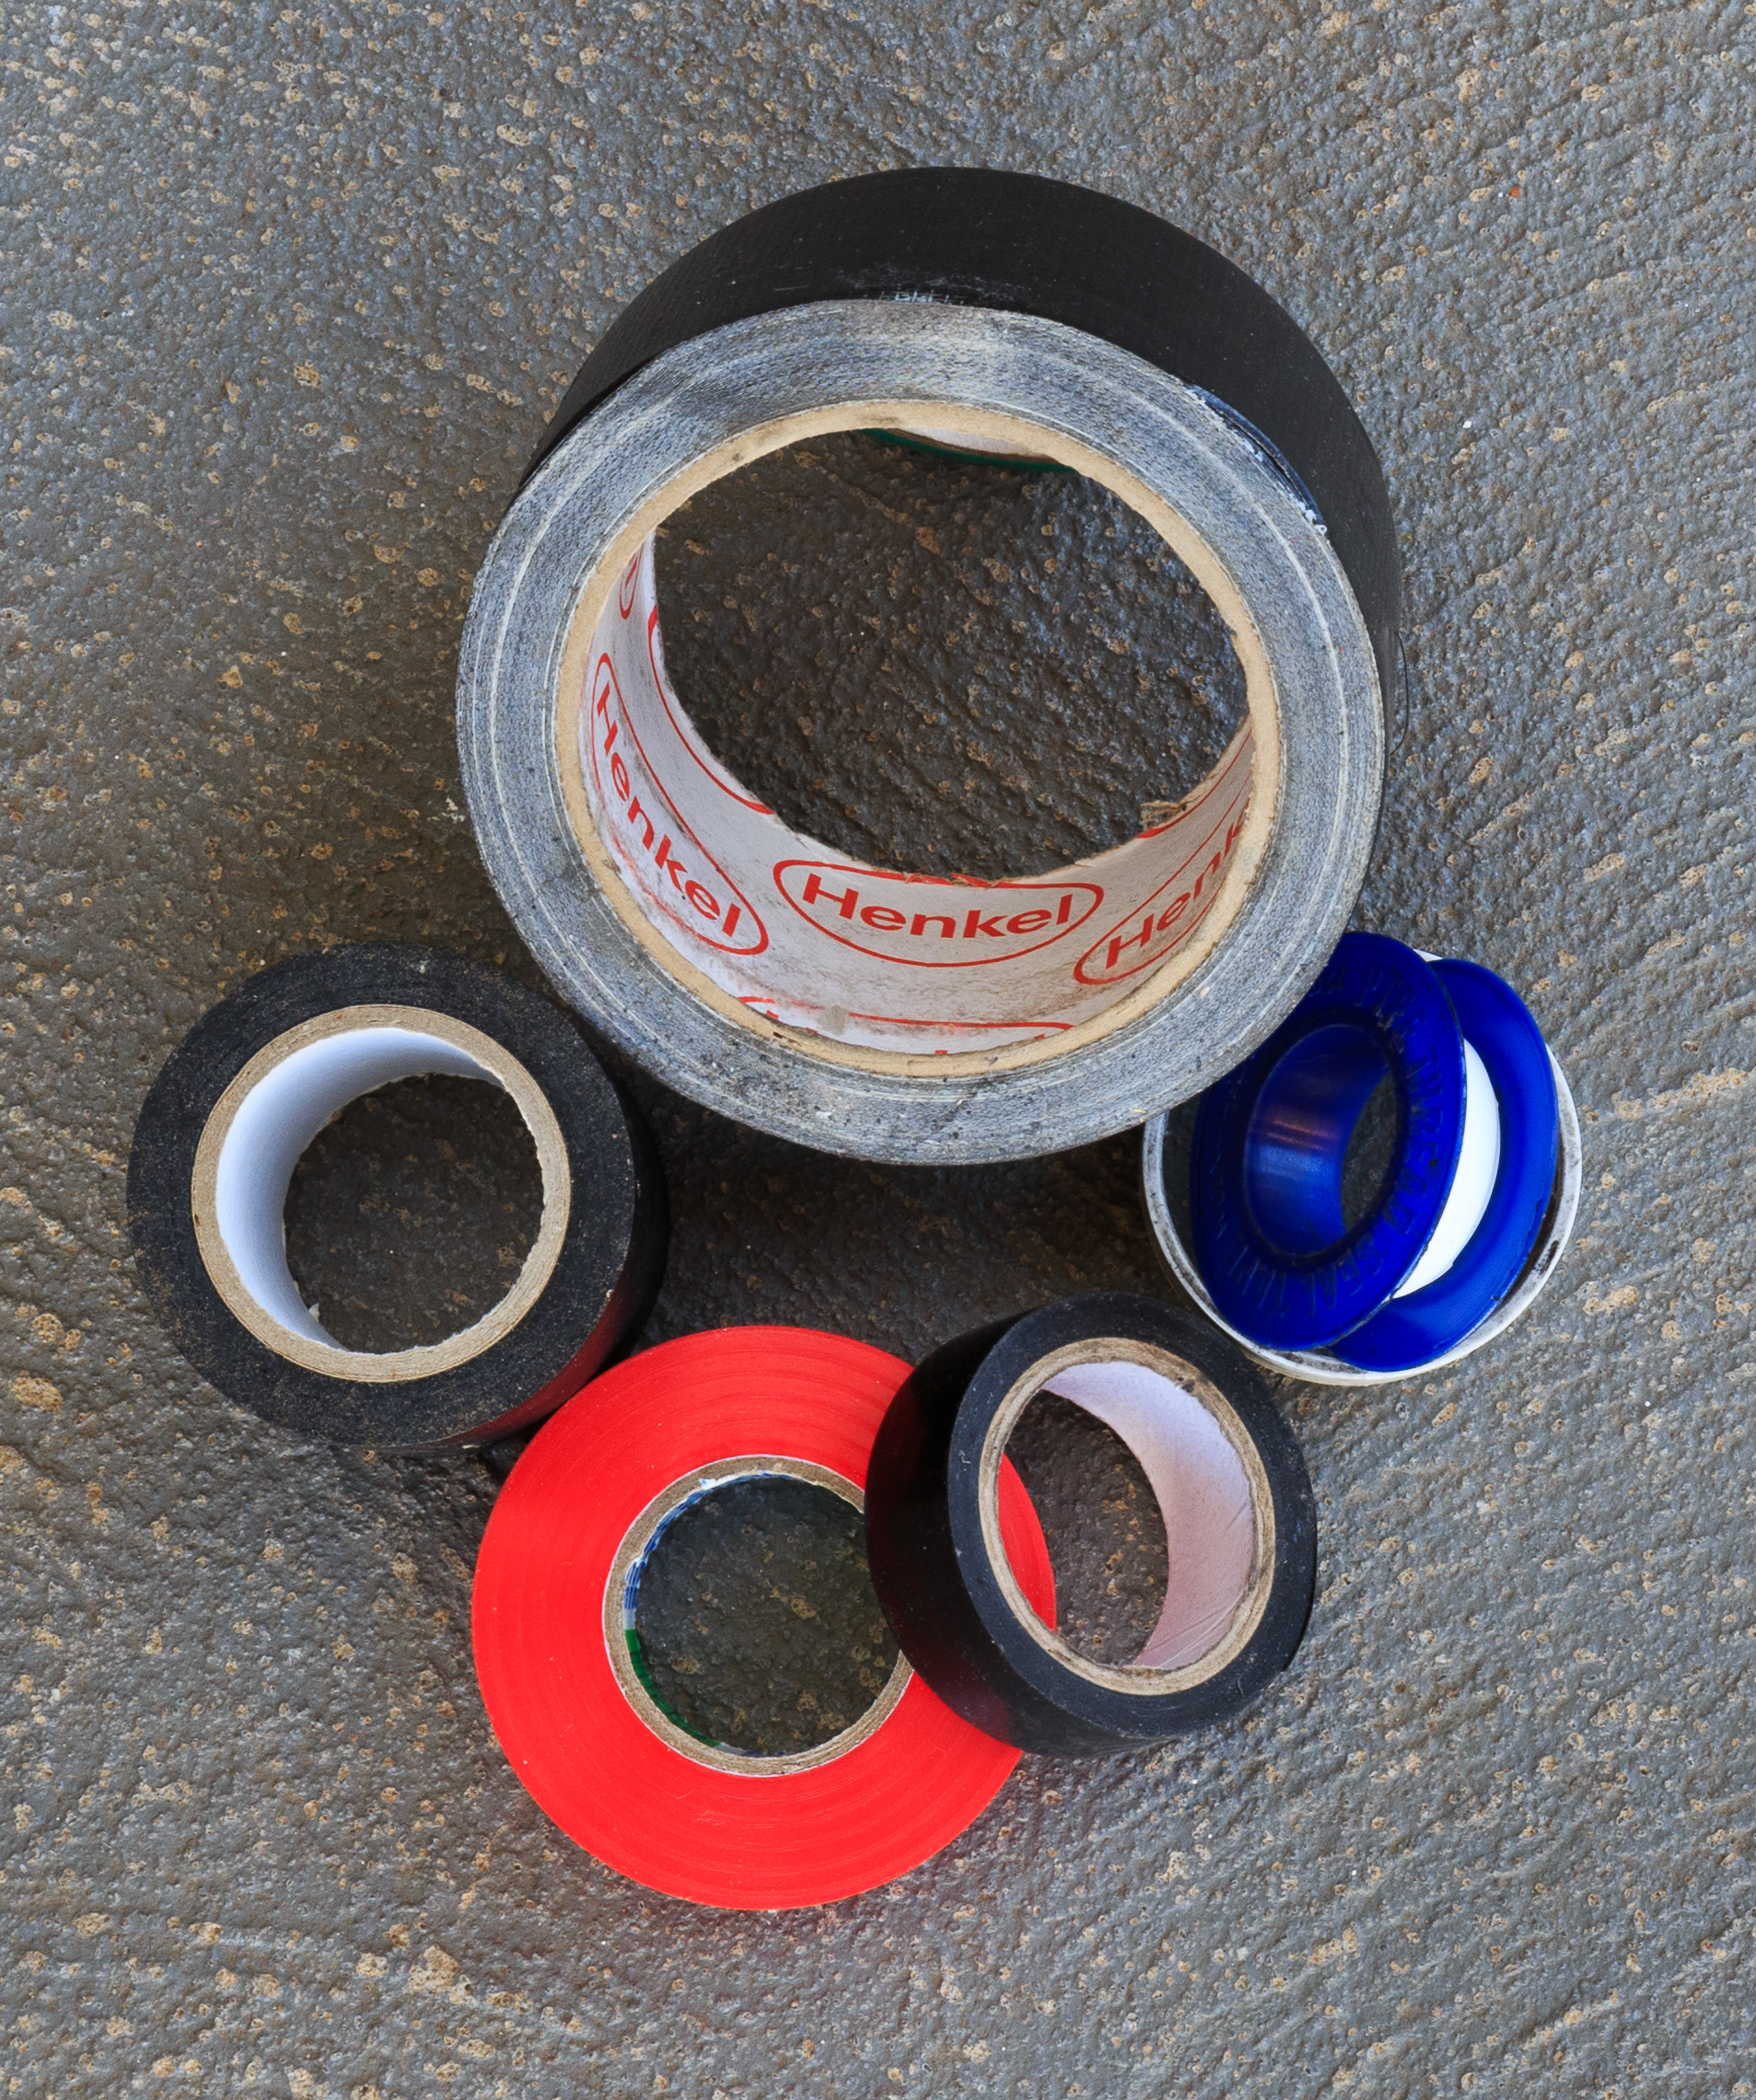 Plumbers, gaffer, electrical tape are RV essential tools